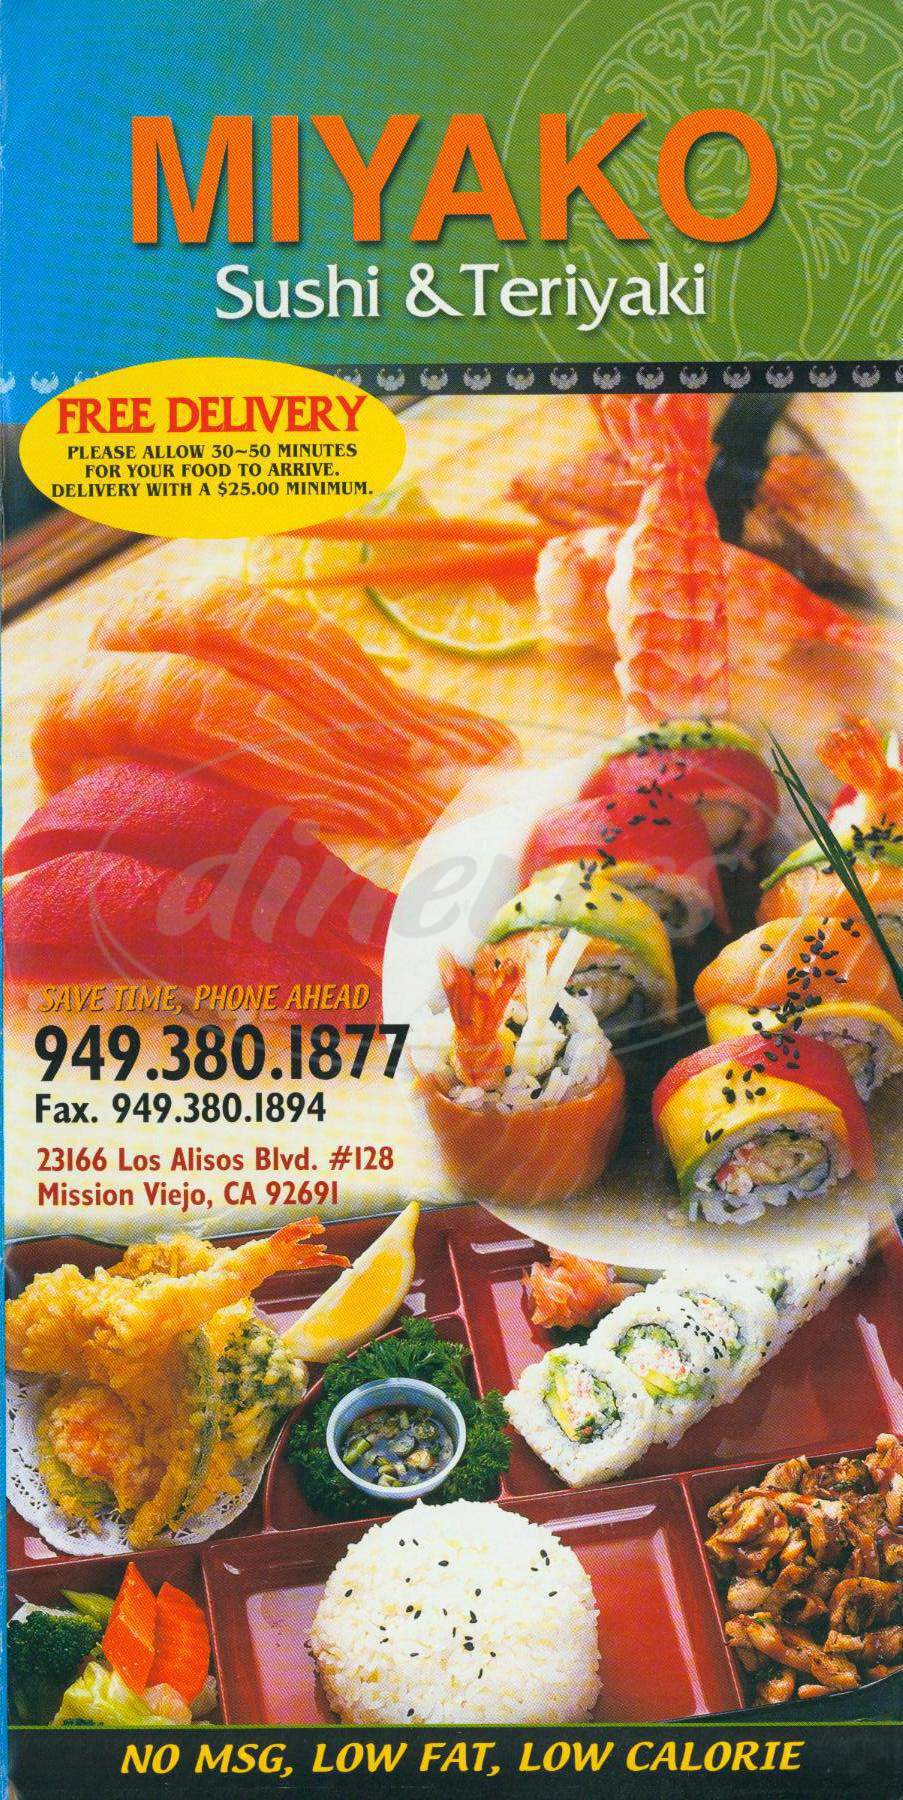 menu for Miyako Sushi & Teriyaki